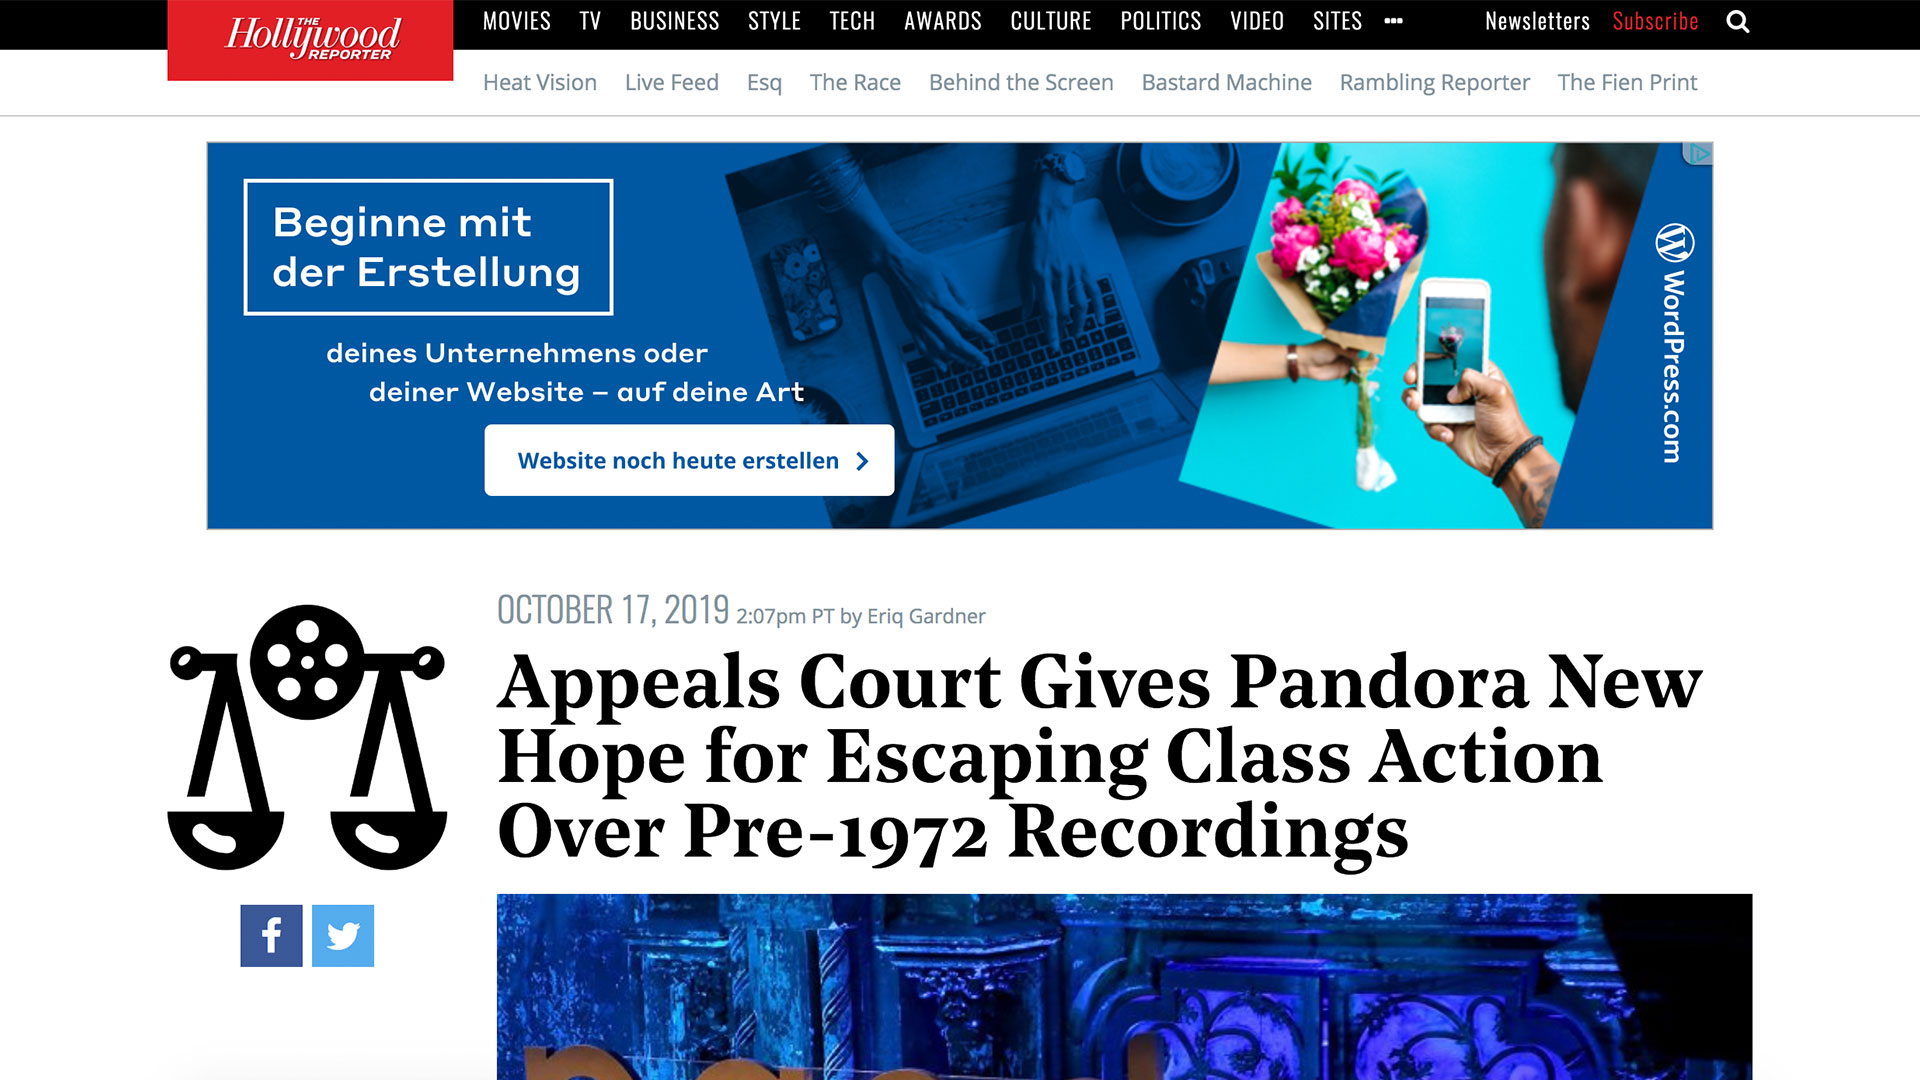 Fairness Rocks News Appeals Court Gives Pandora New Hope for Escaping Class Action Over Pre-1972 Recordings